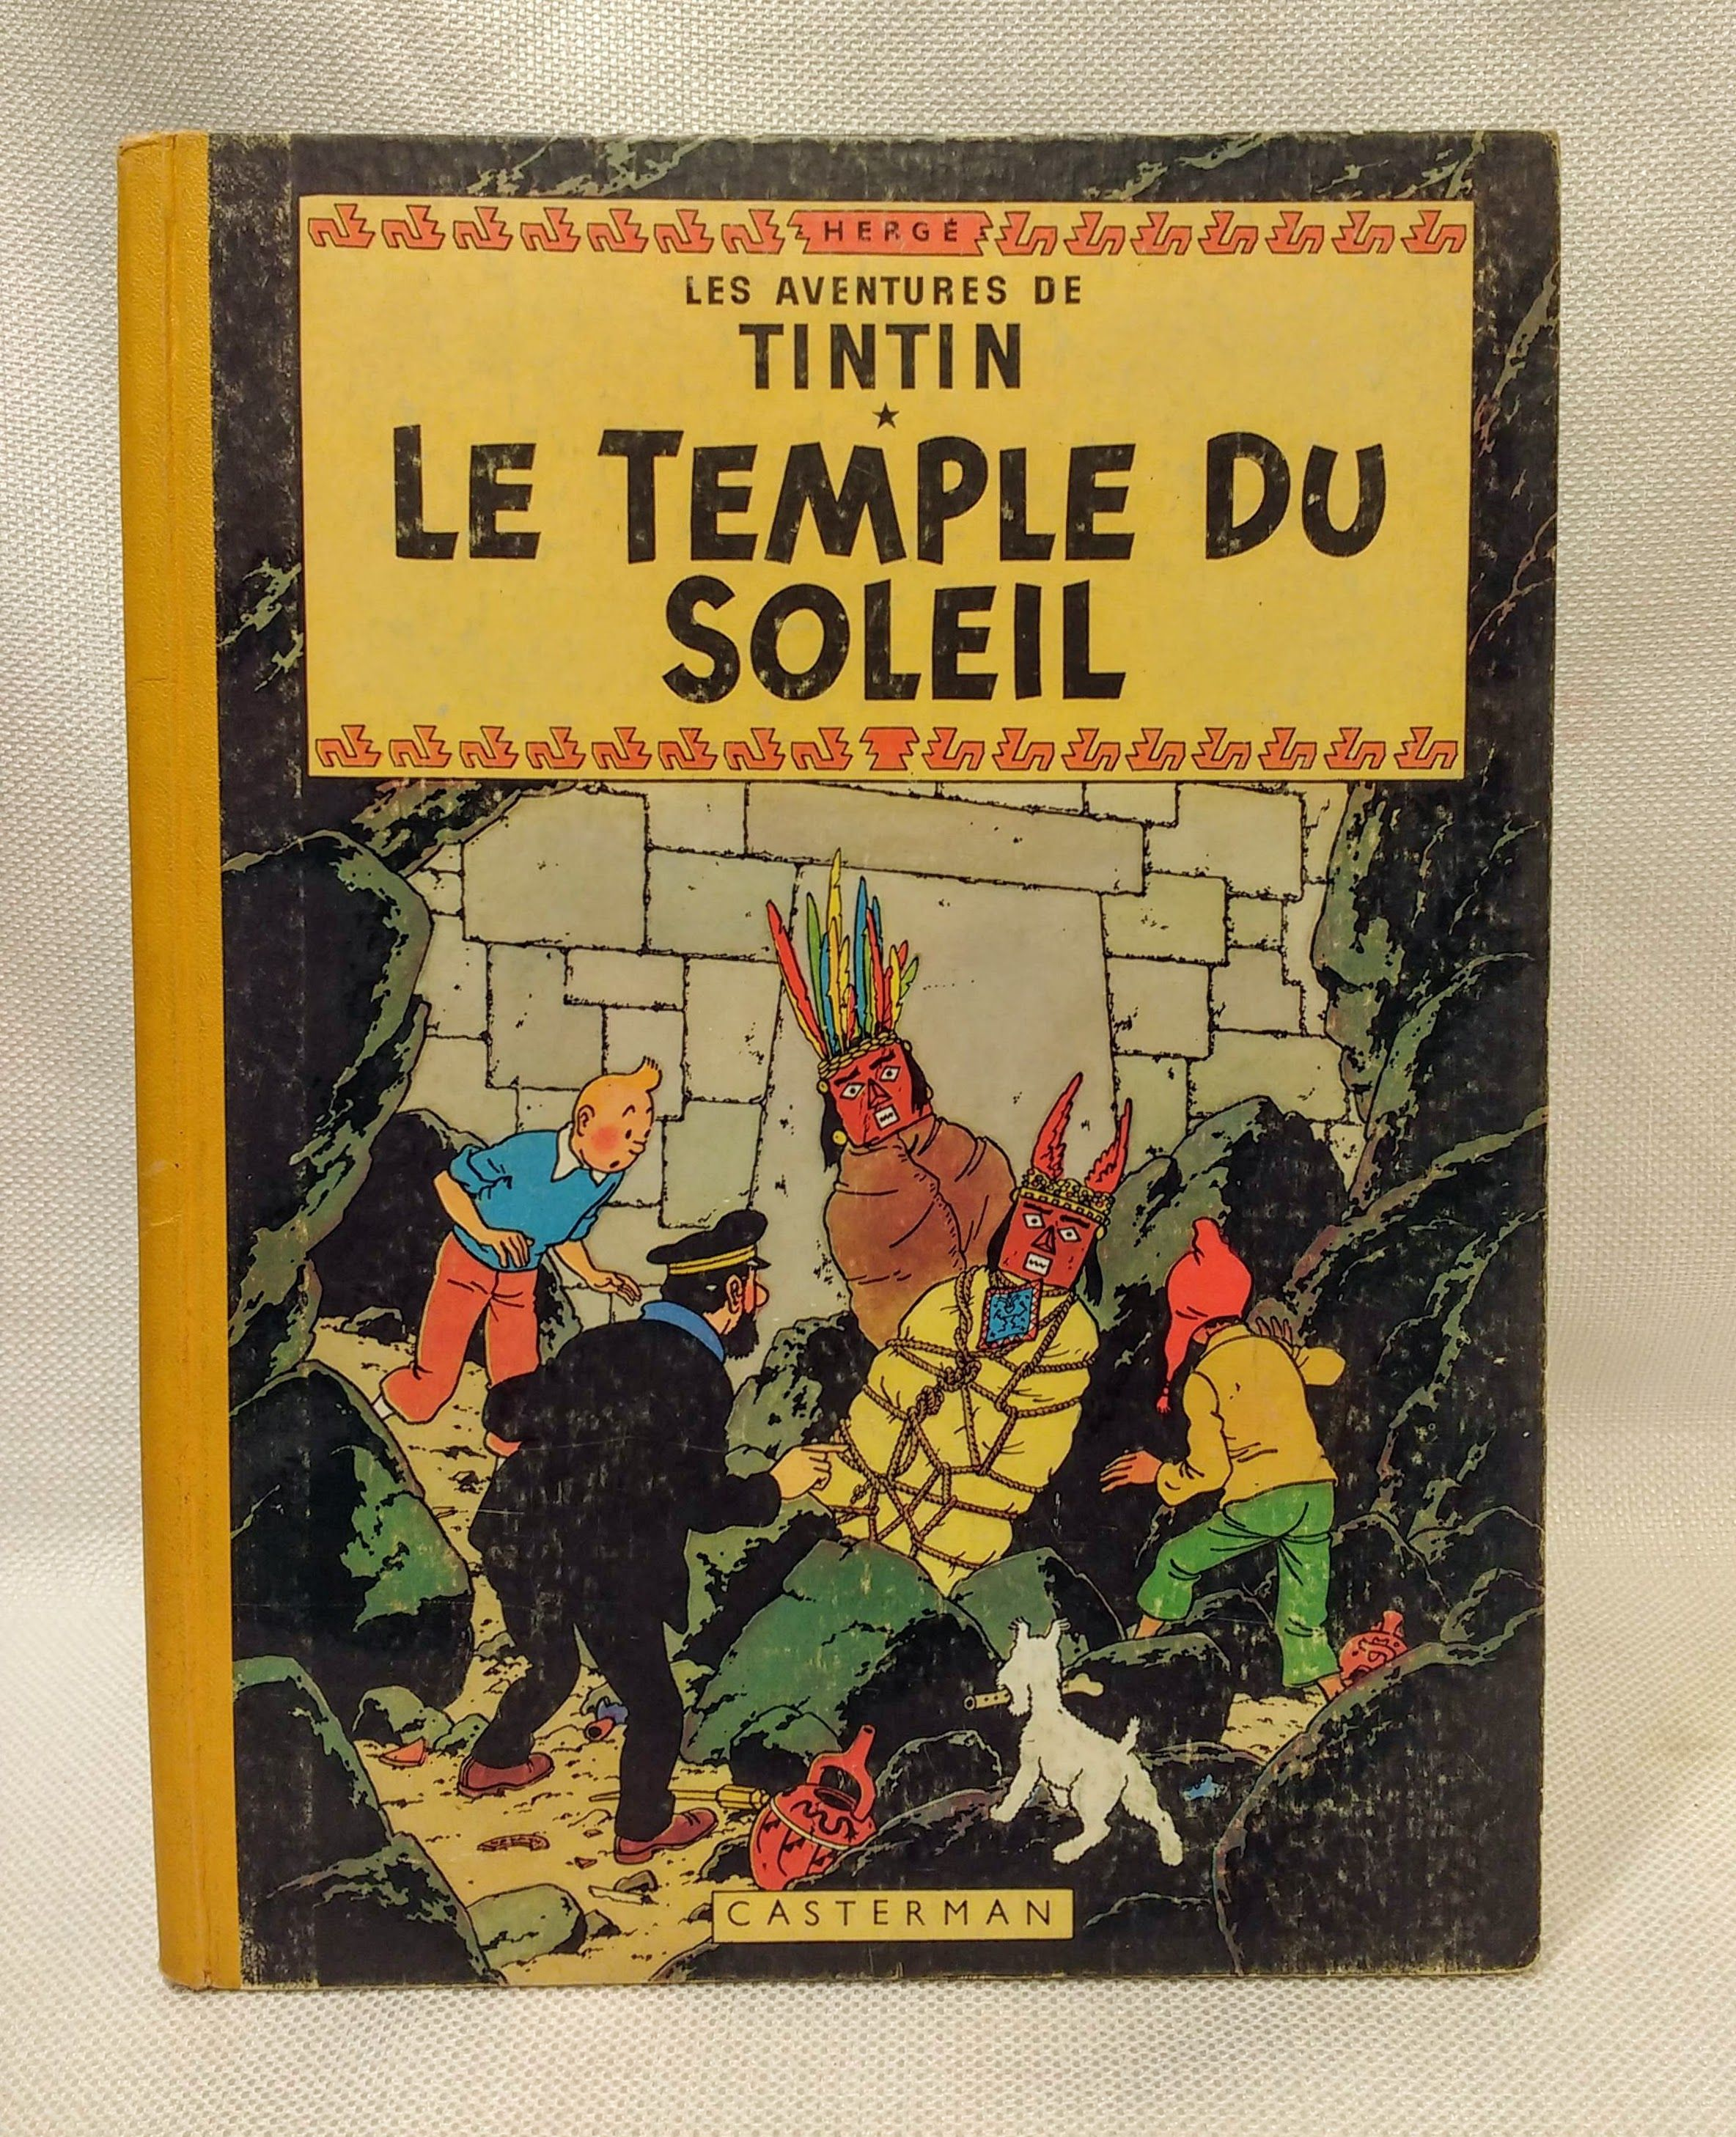 Les Aventures de Tintin: Le Temple Du Soleil - Tome 14 (Adventures of Tintin) (French Edition), Herge